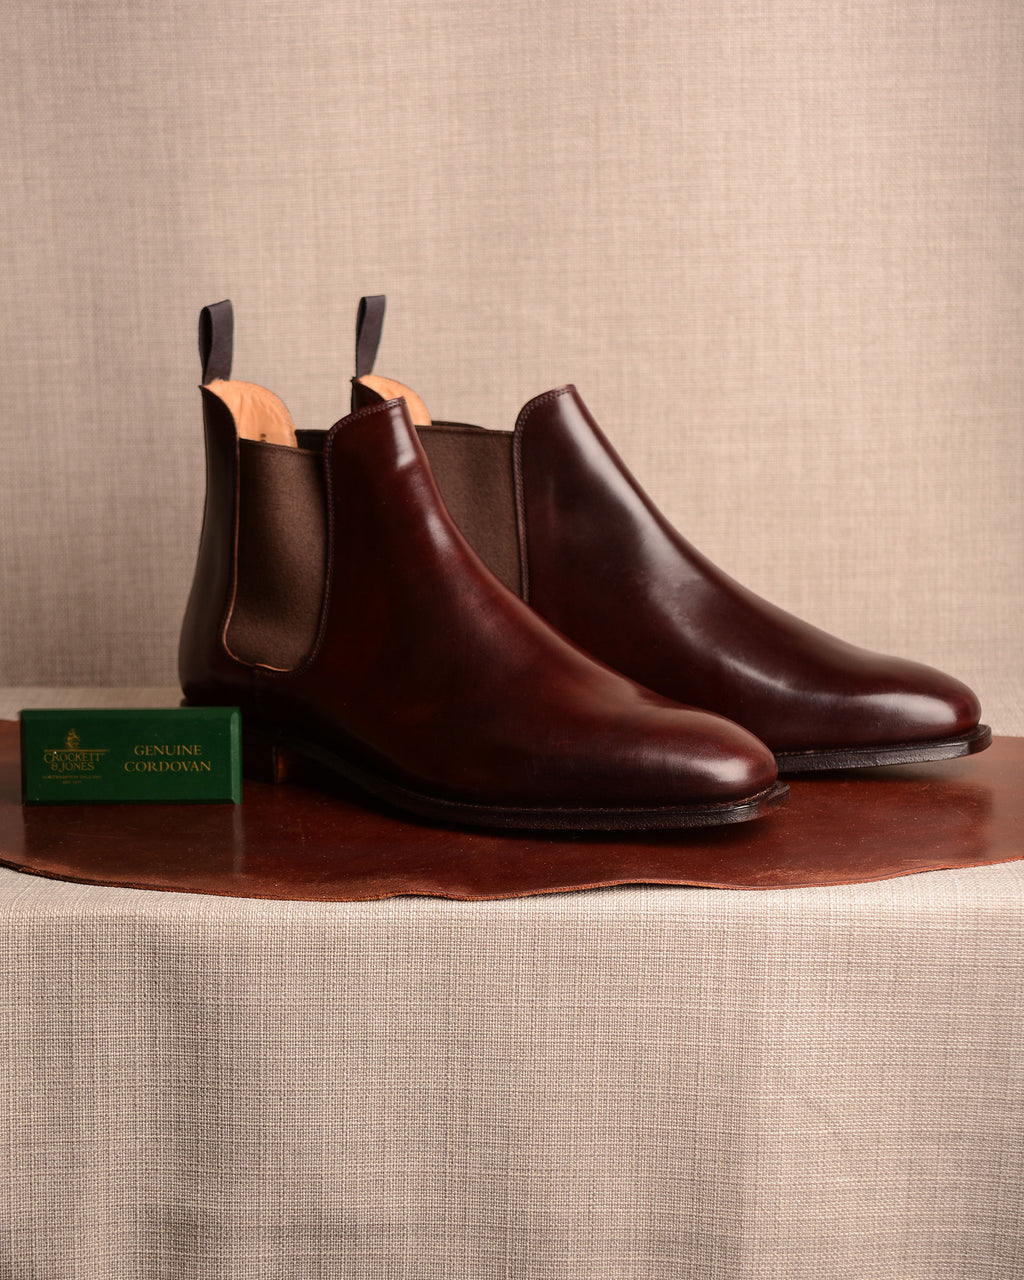 Crockett & Jones Chelsea - Col.8 Cordovan